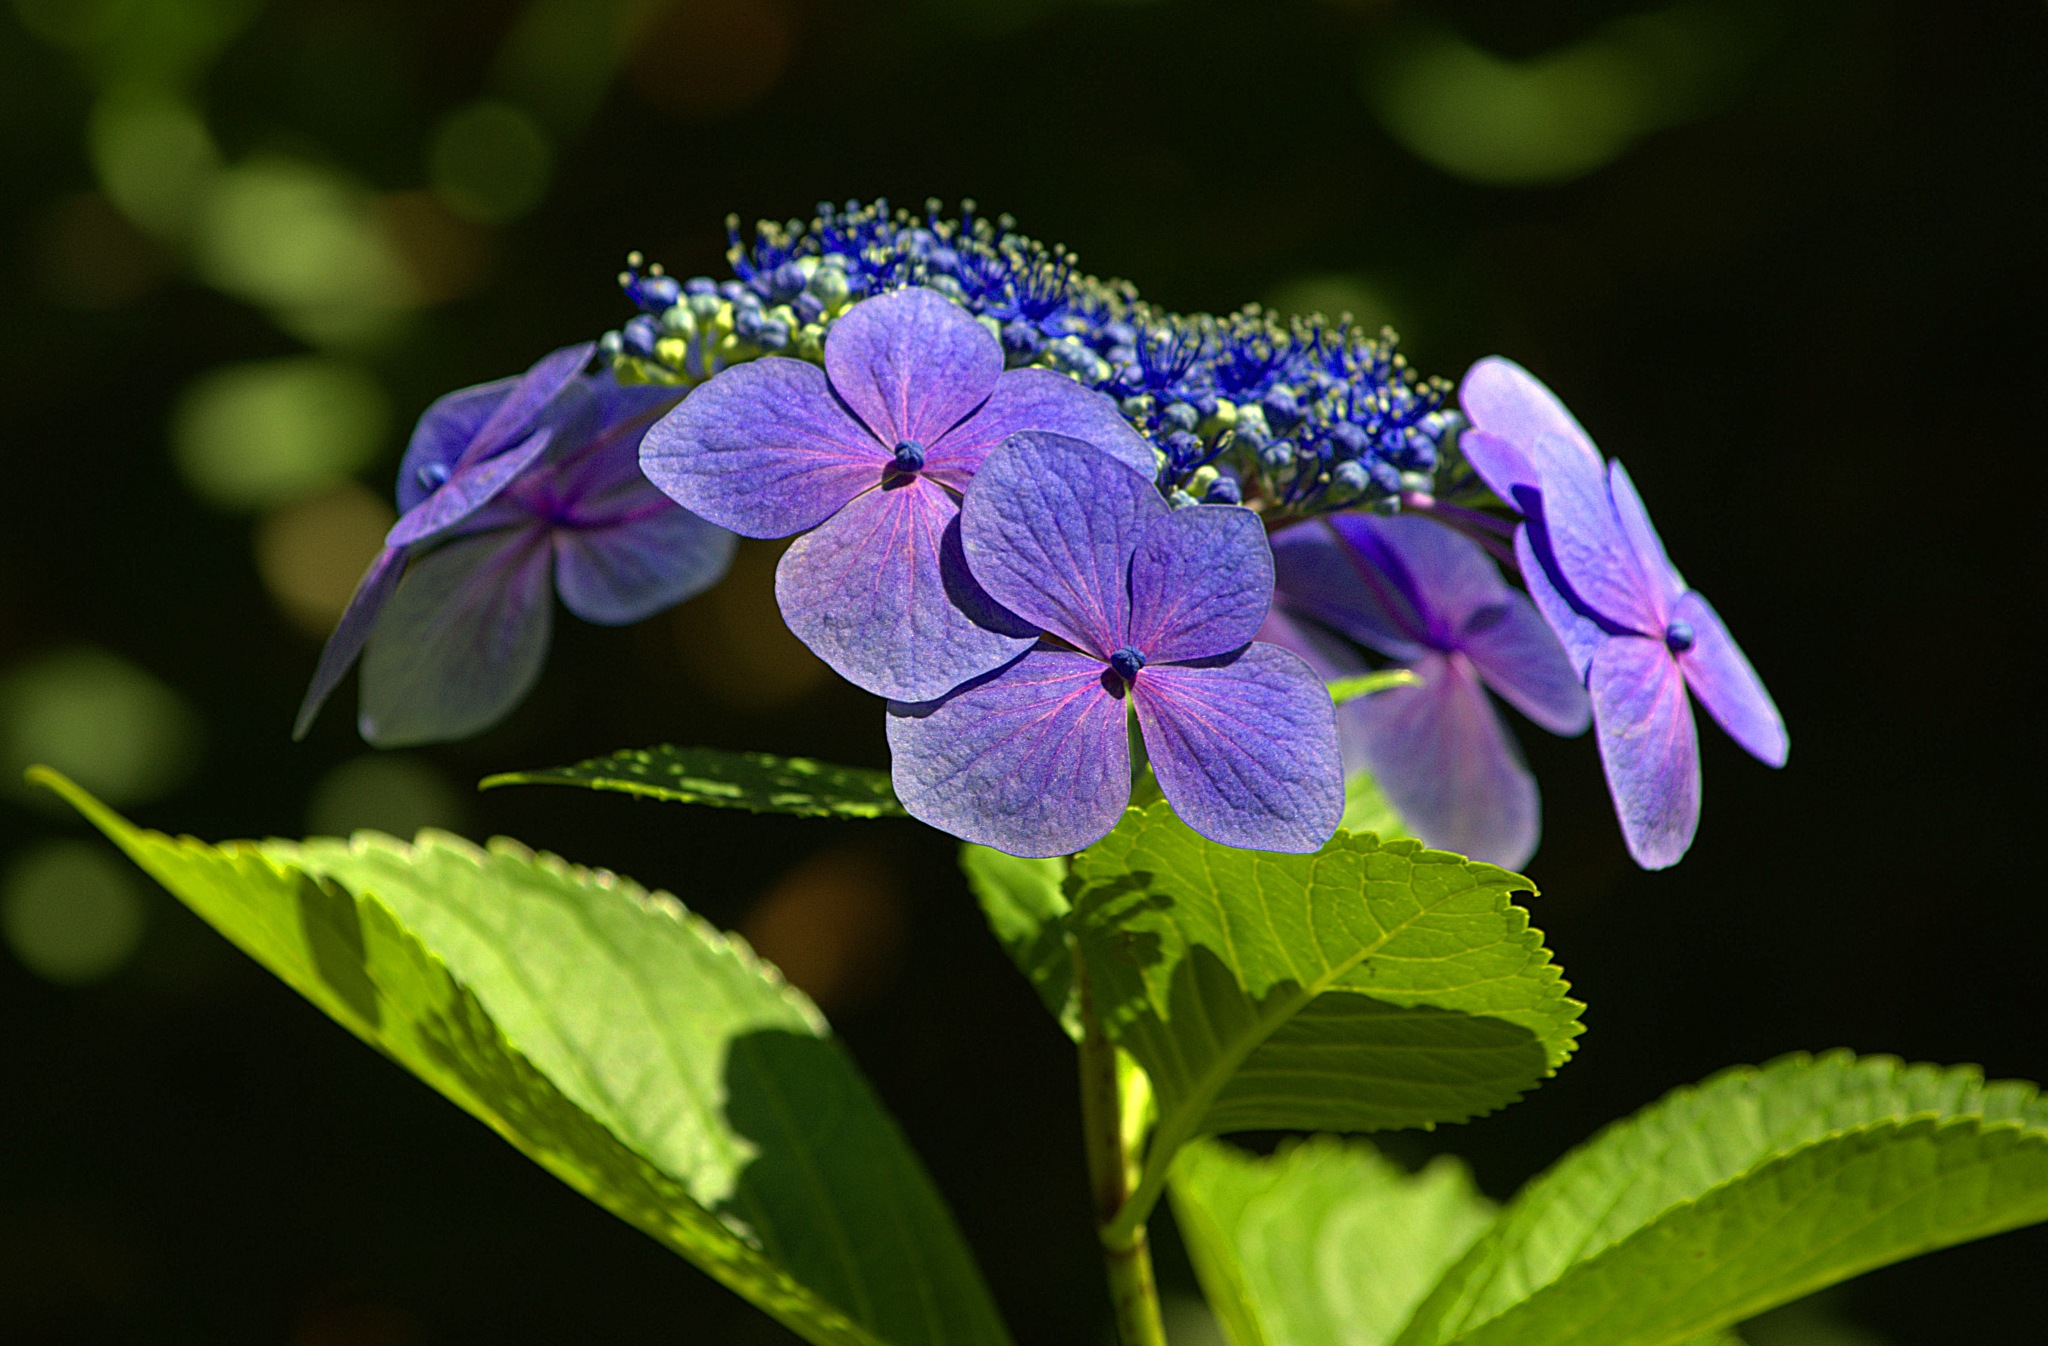 Hydrangea Flower Cluster by pscottwong